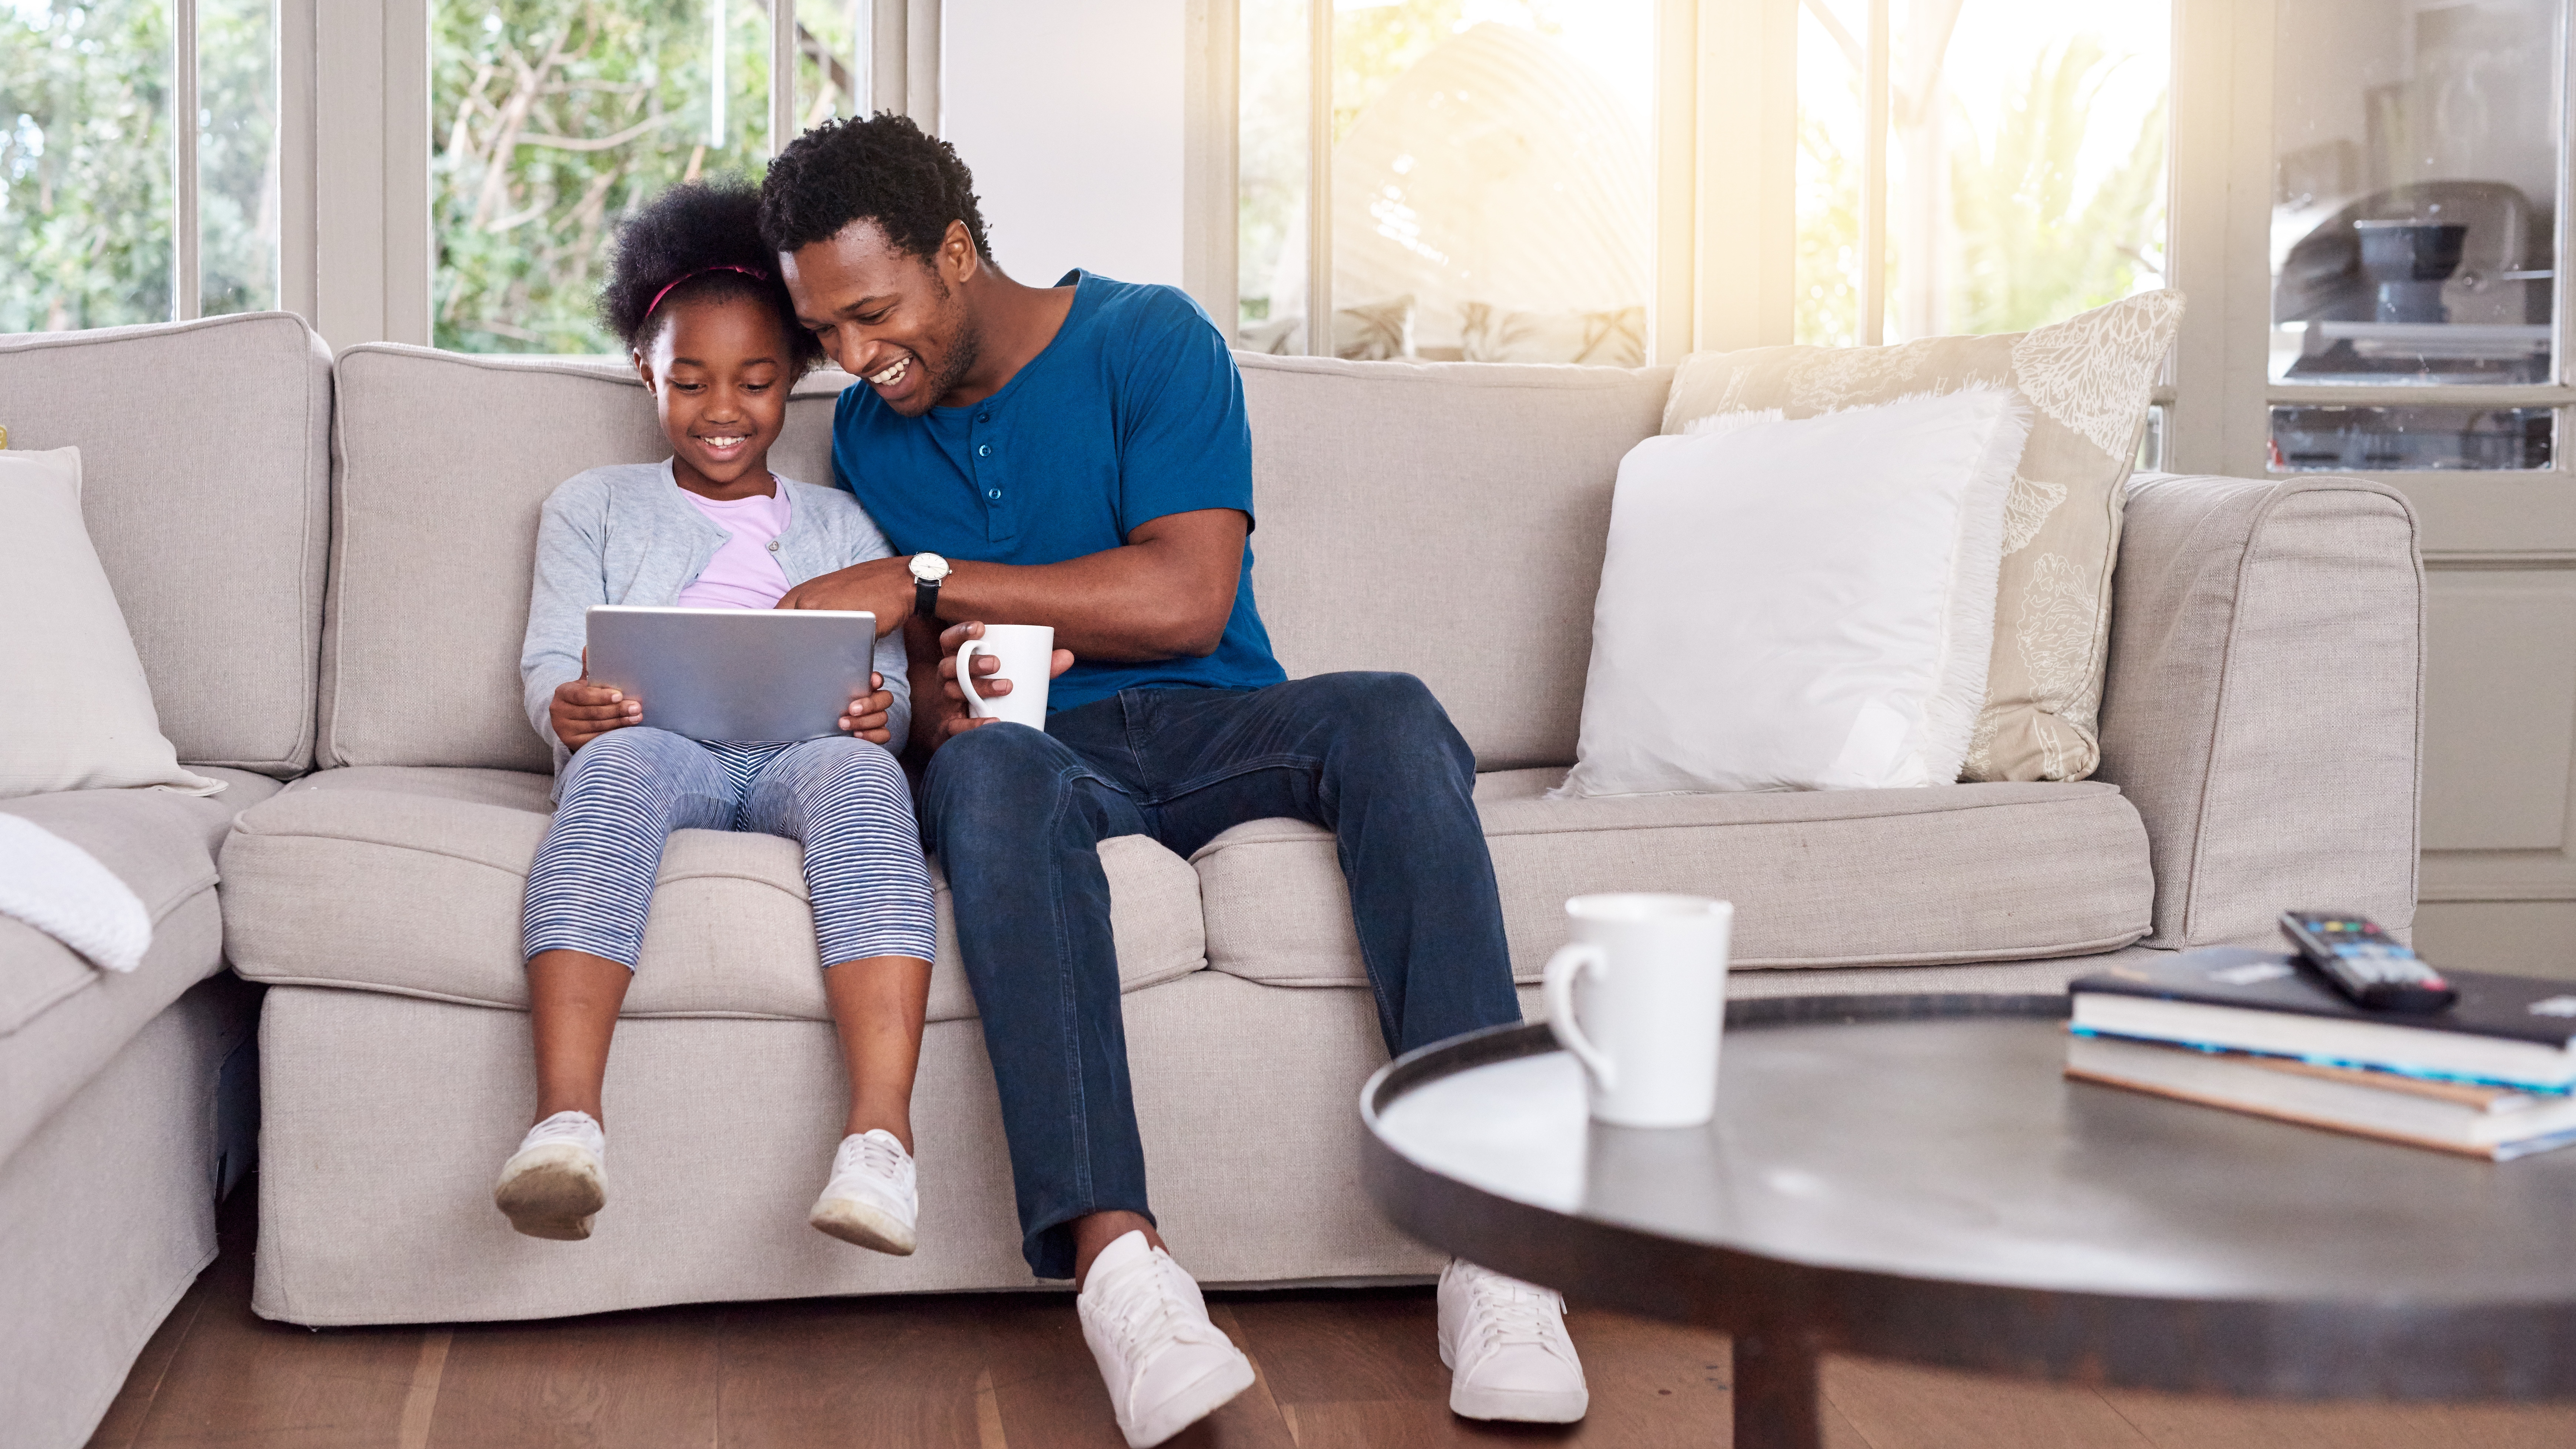 Shot of a father and his little daughter using a digital tablet together at home